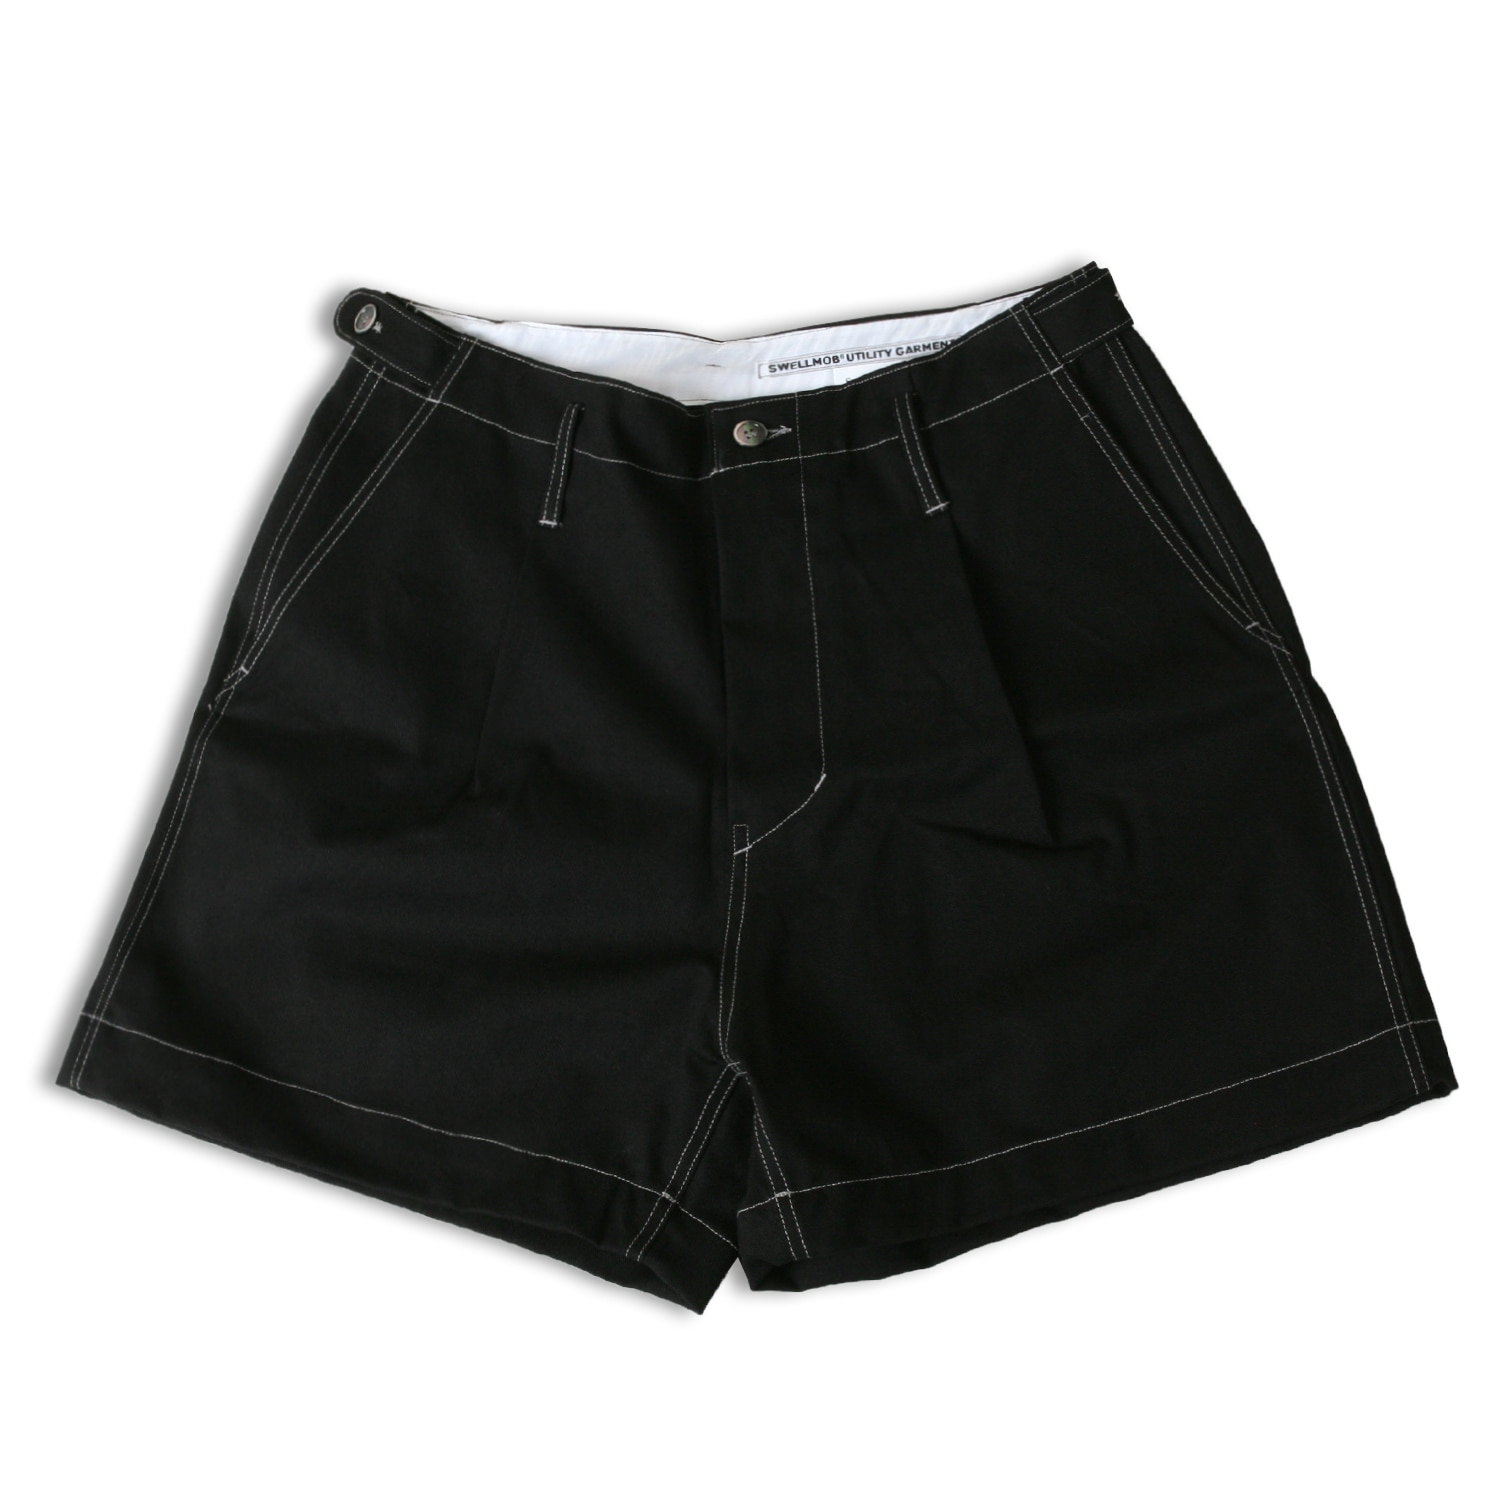 Officer shorts vol.2 black